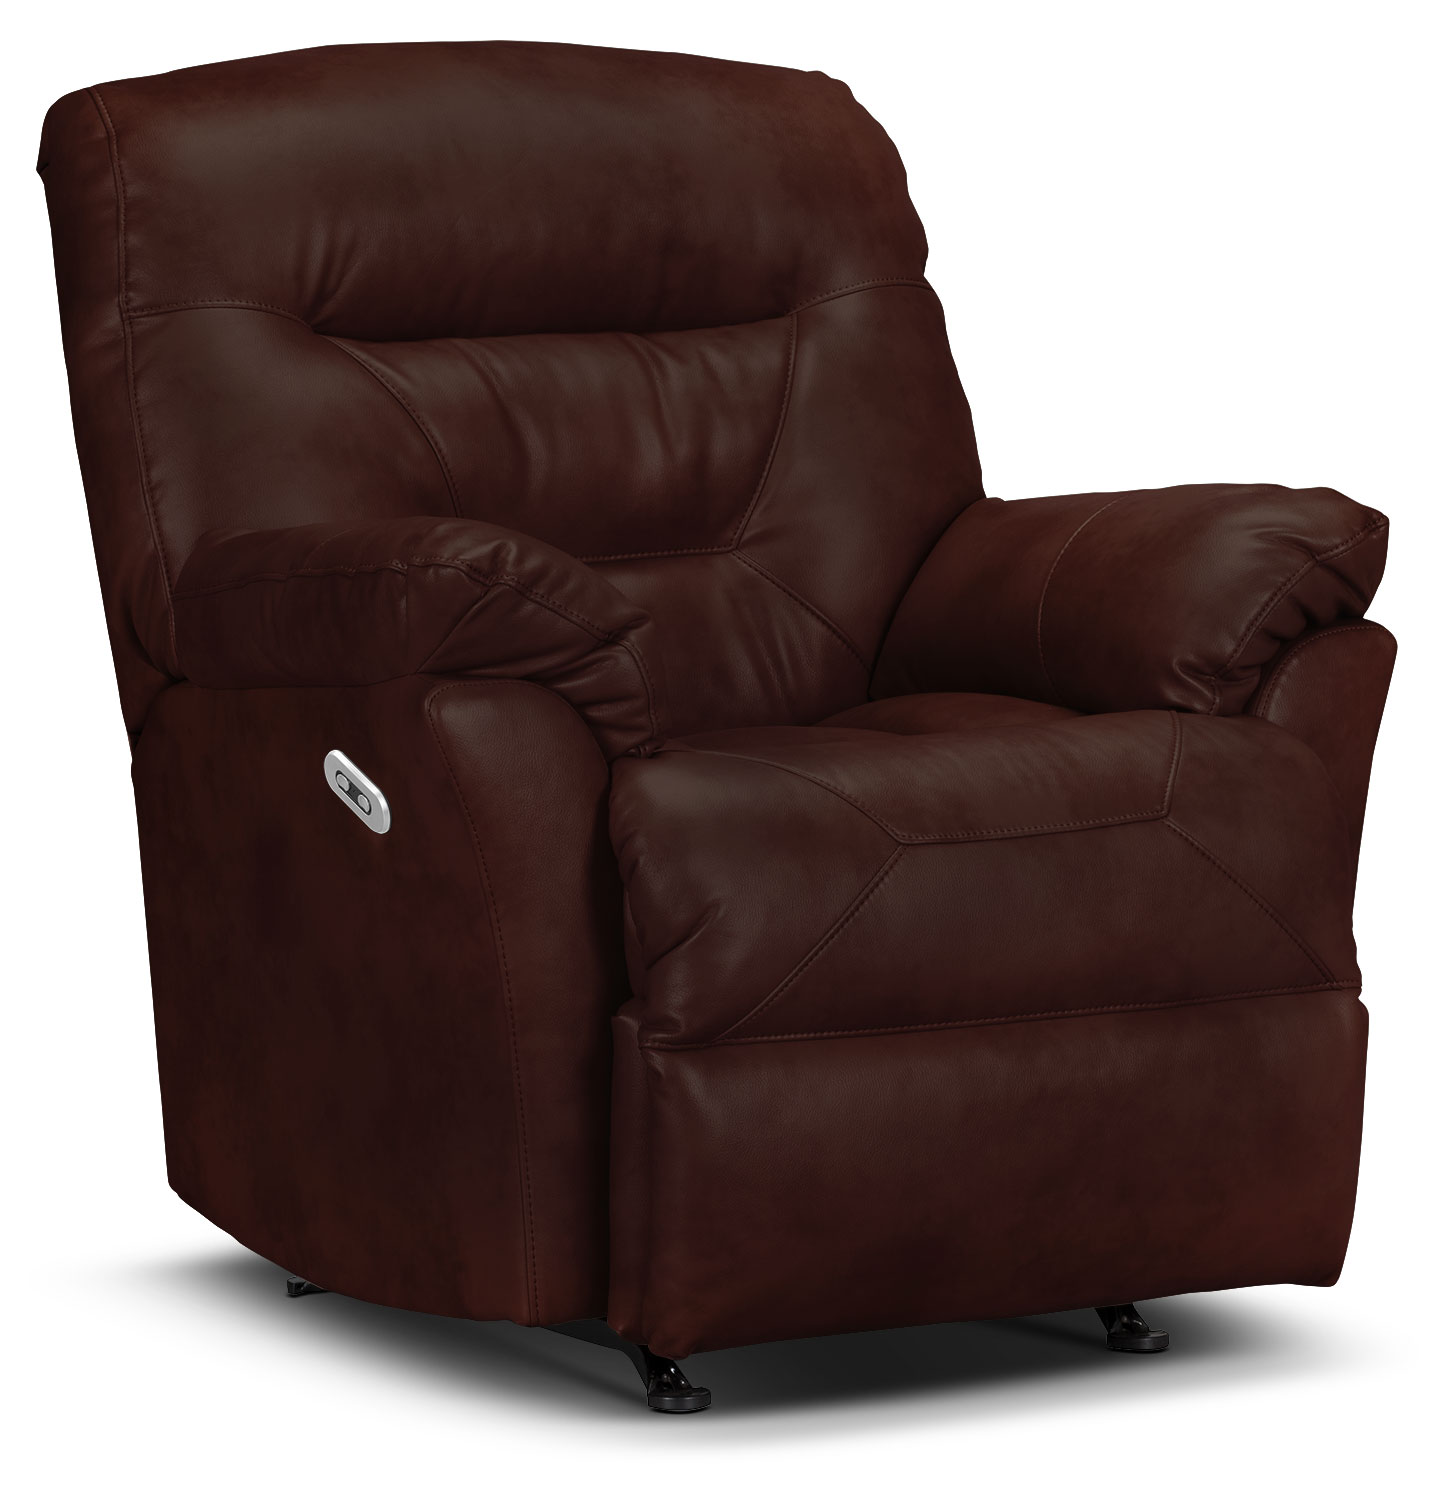 Living Room Furniture - Designed2B Recliner 4579 Genuine Leather Power Recliner - Walnut